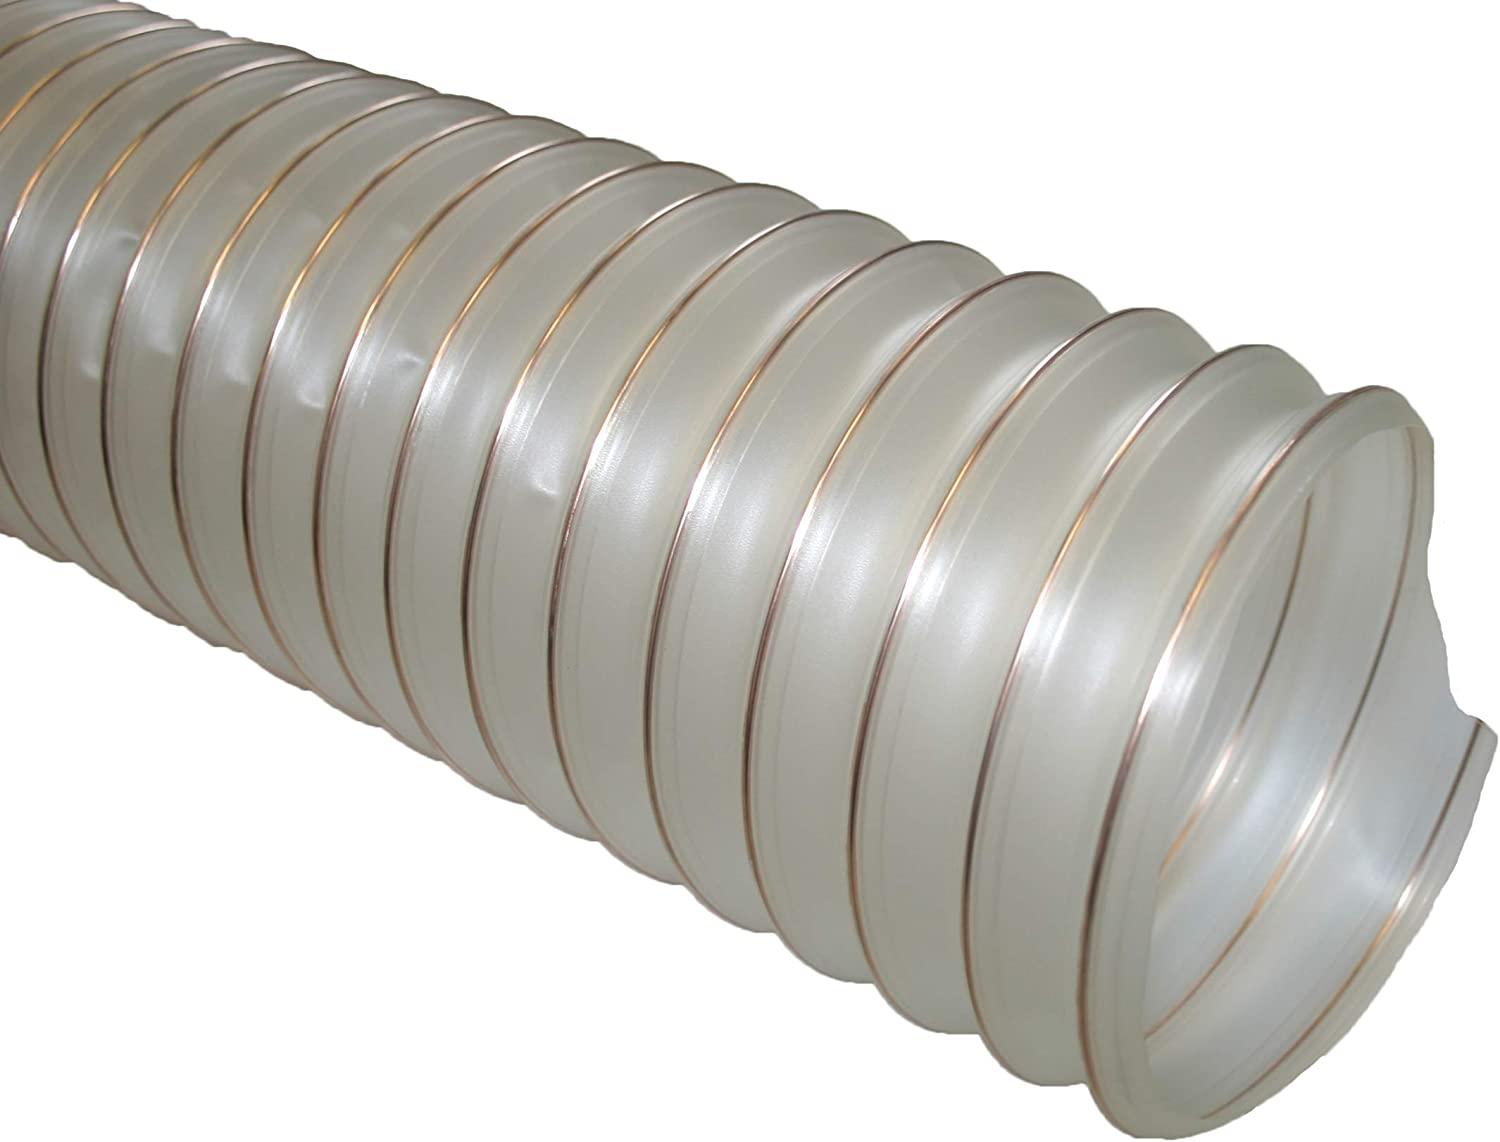 Woodworking 150mm ID x 5m Length Ventilation Dust /& Fume Extraction PU Flexible Ducting Hose Fully Antistatic Polyurethane